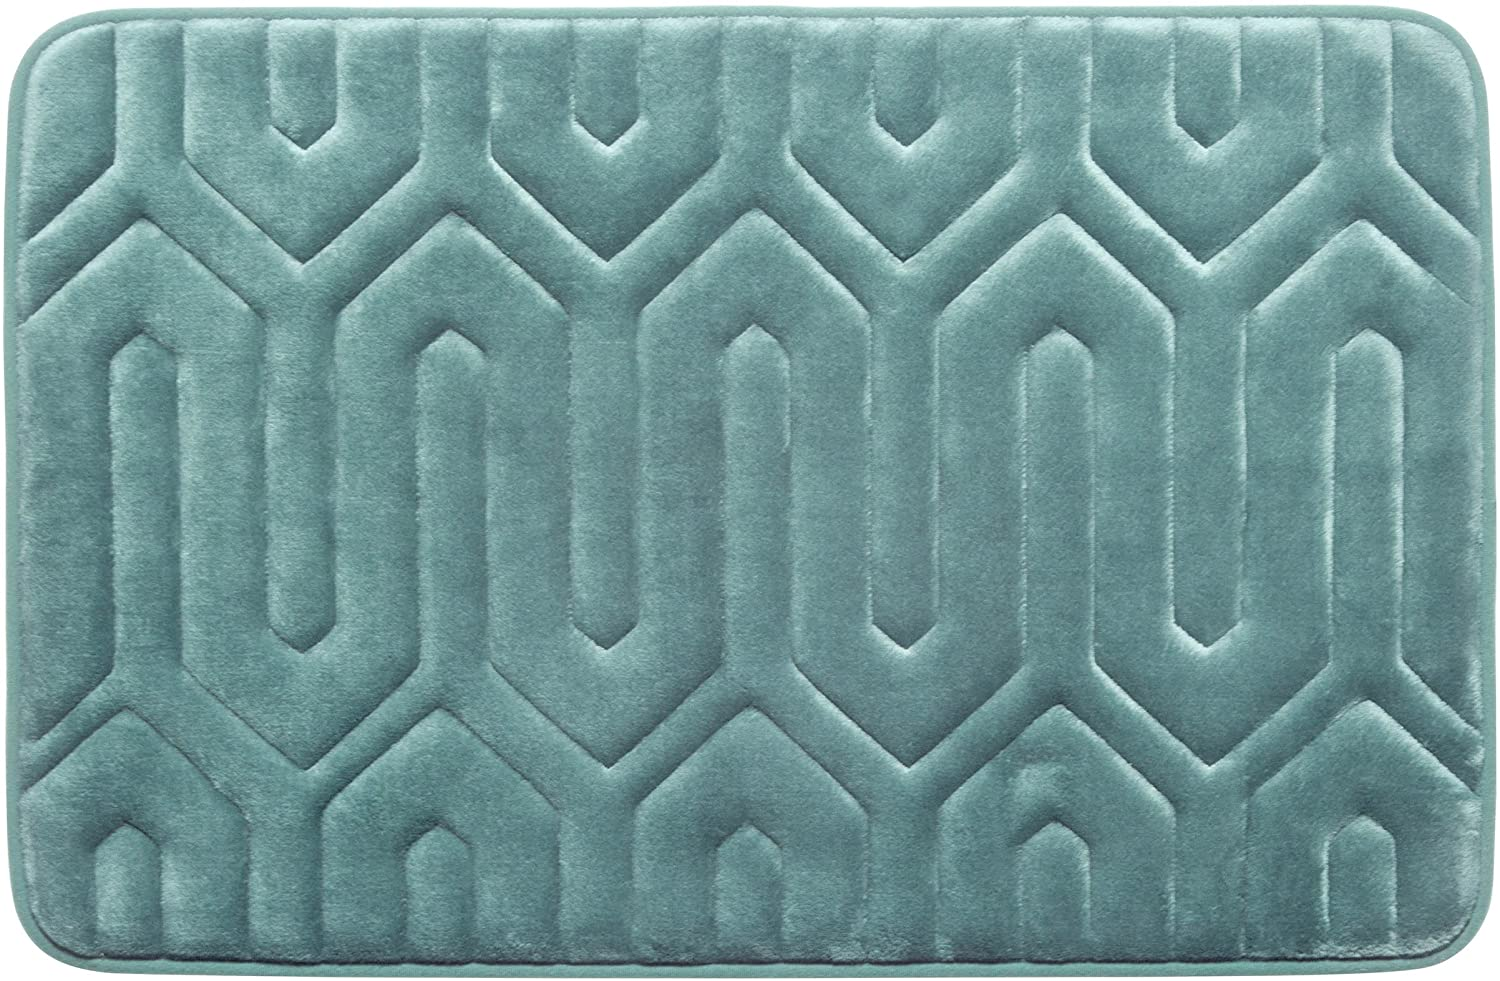 Thea Premium Extra Thick Memory Foam Bath Mat with BounceComfort Technology, 20 x 32 Marine Blue